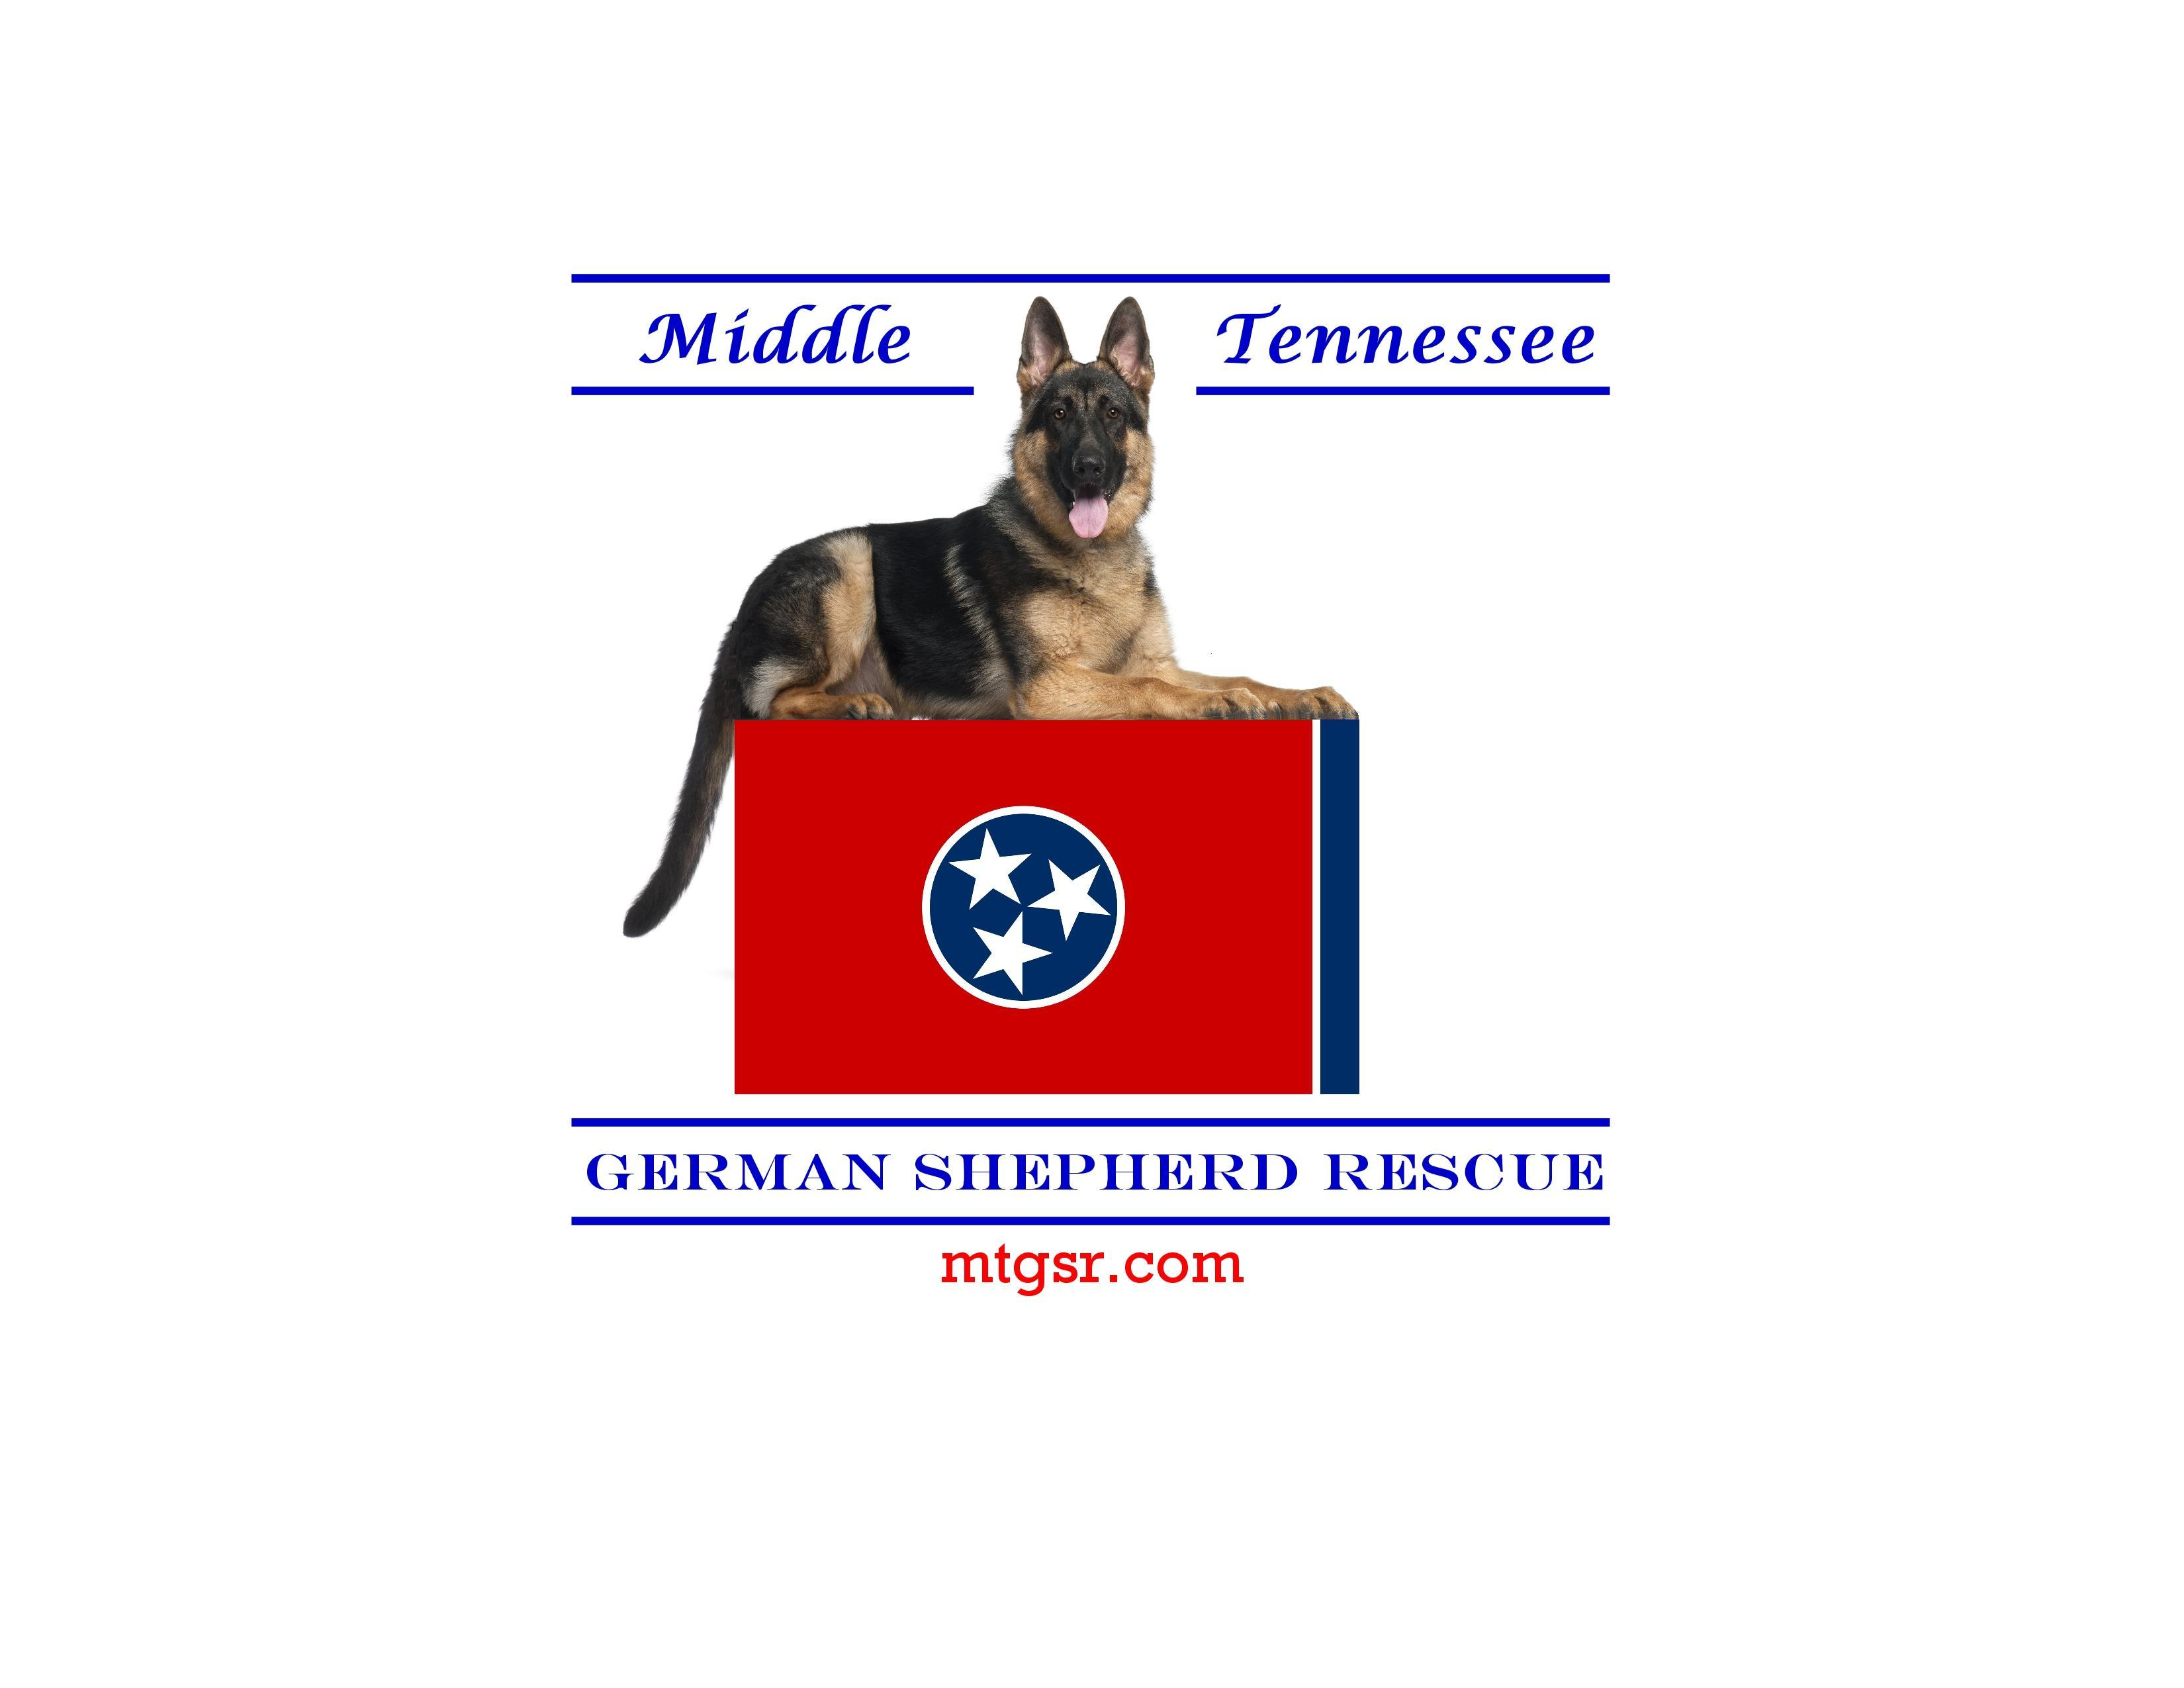 Middle Tennessee German Shepherd Rescue